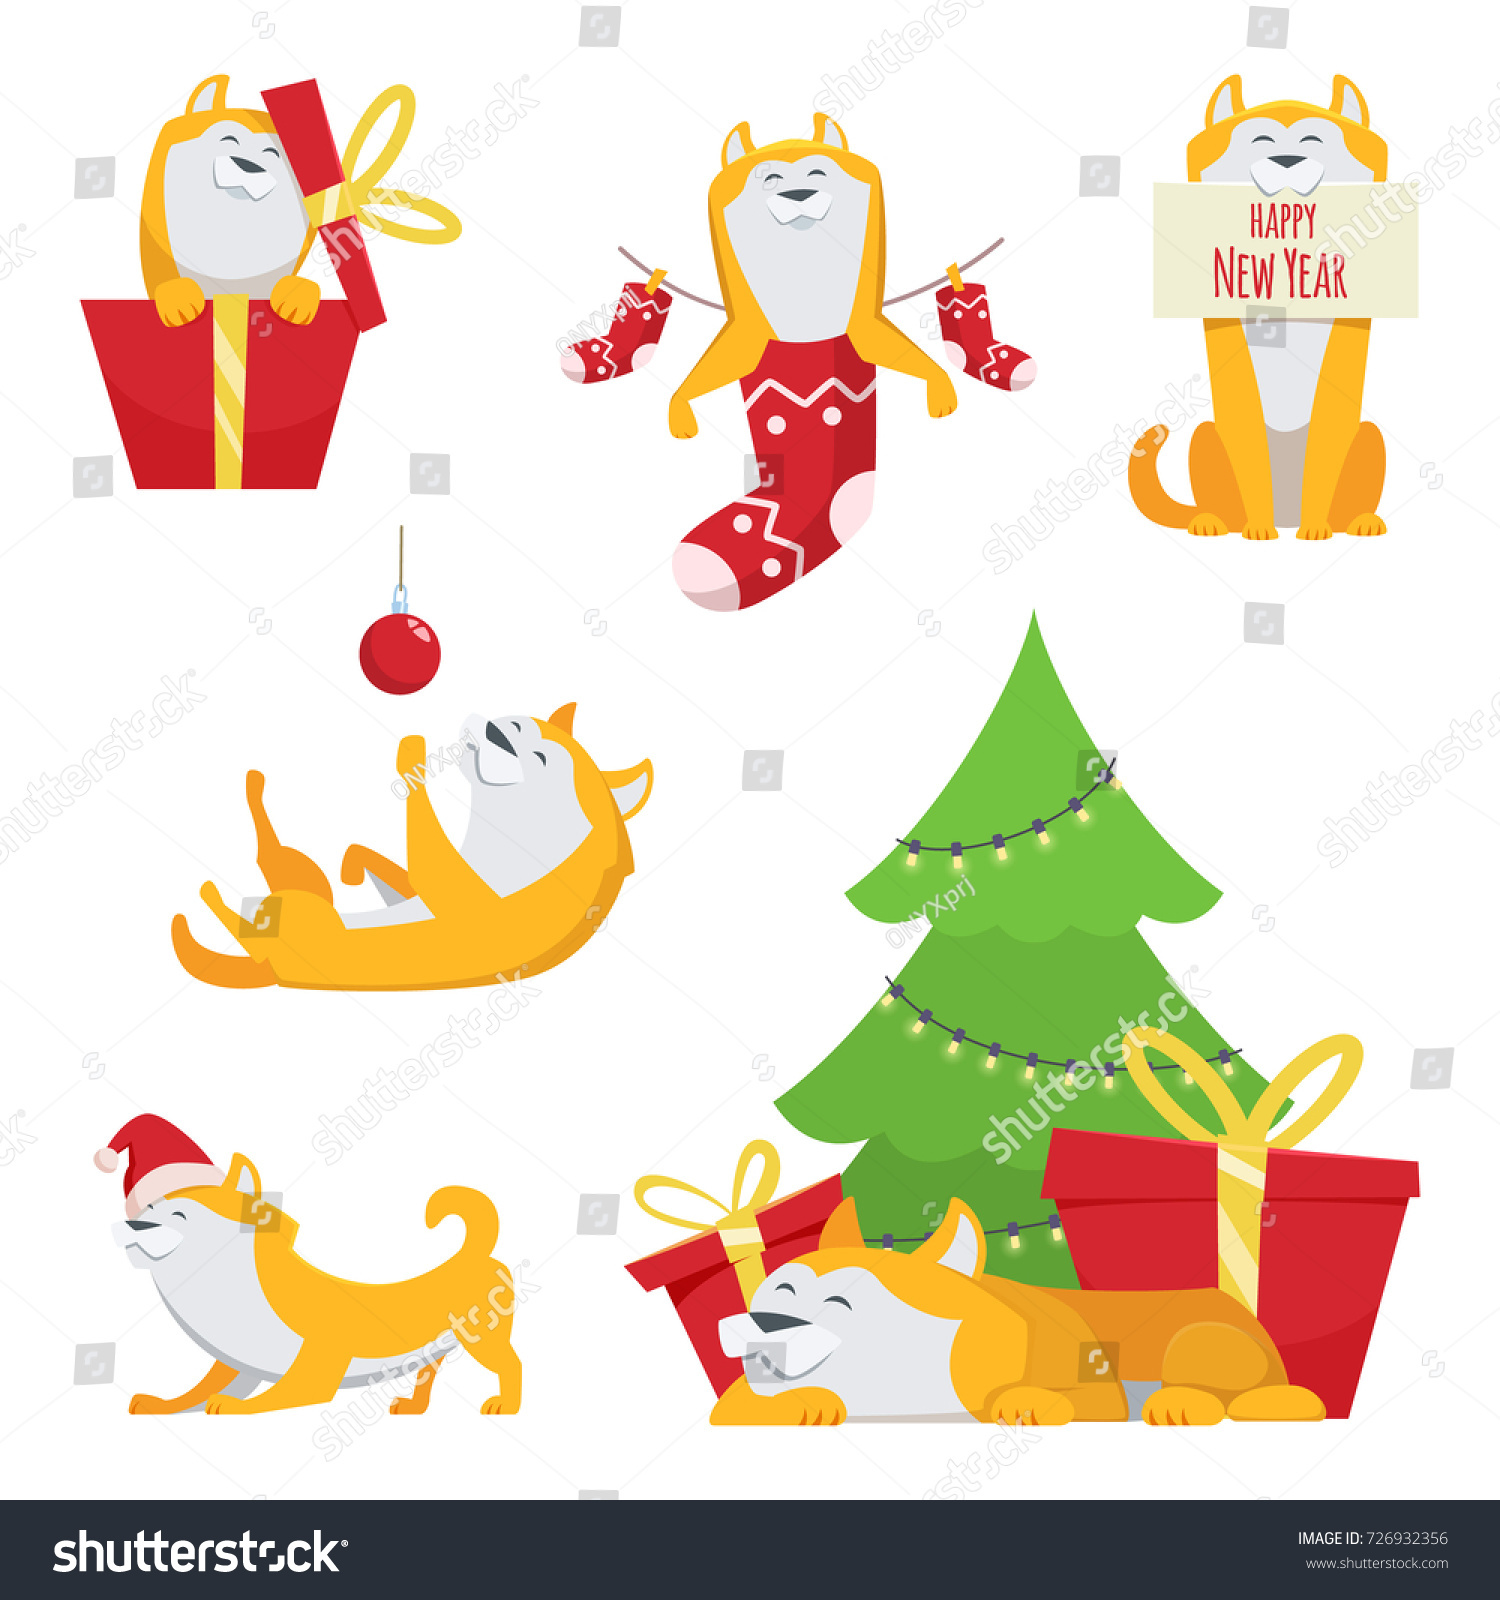 Character Design Cartoon Style Yellow Dog Stock Vector (Royalty Free ...